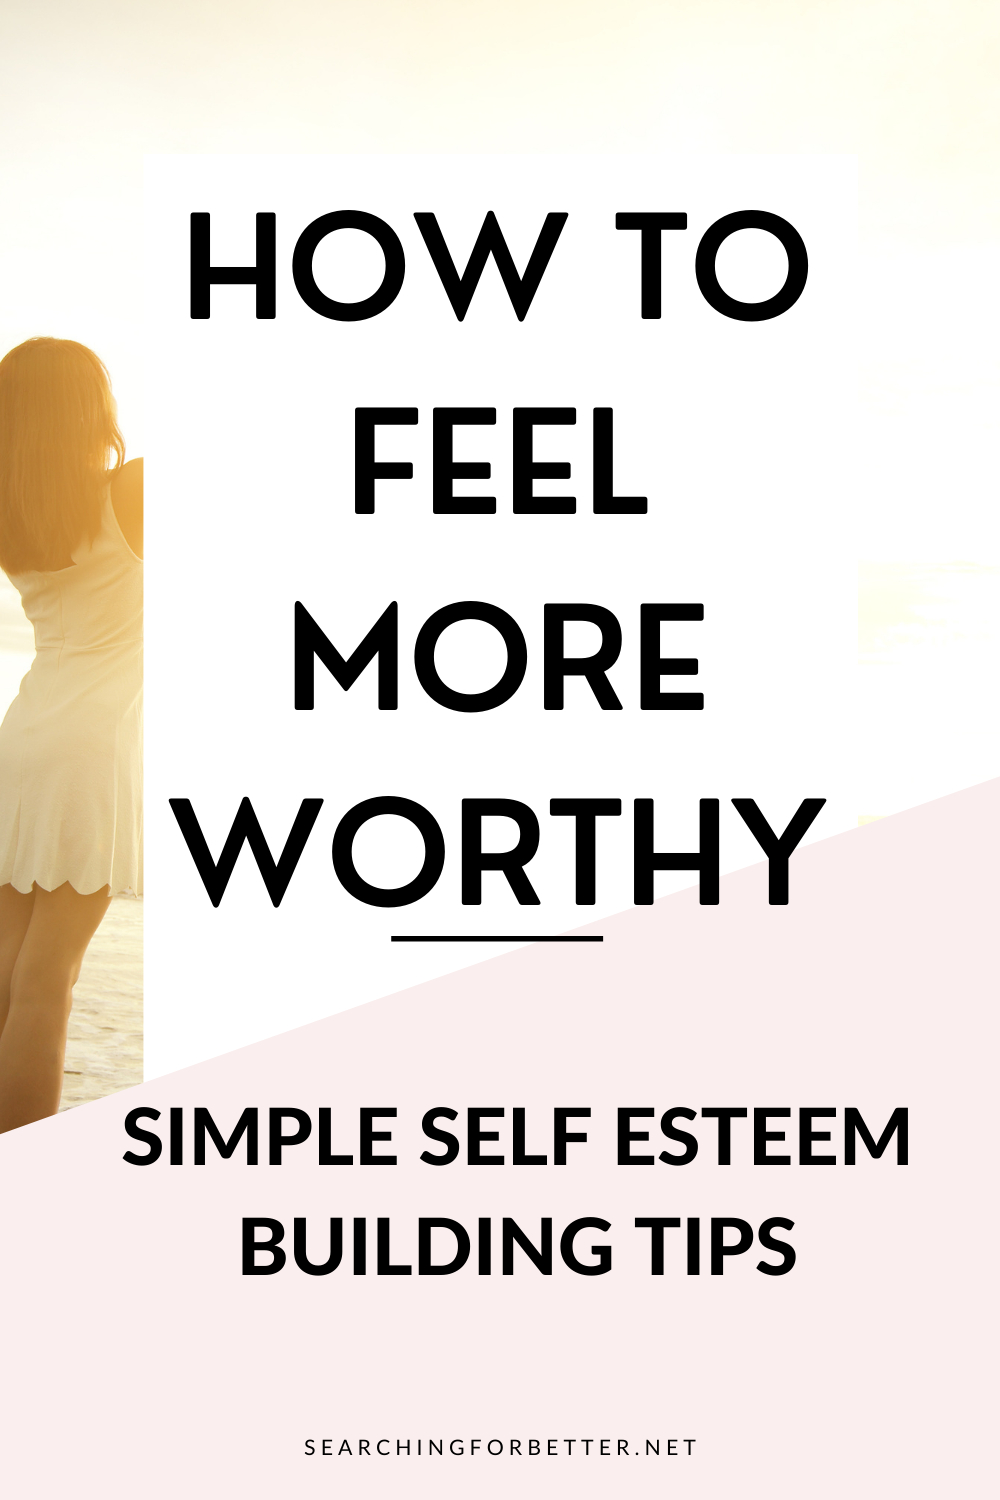 how to feel more worthy 1